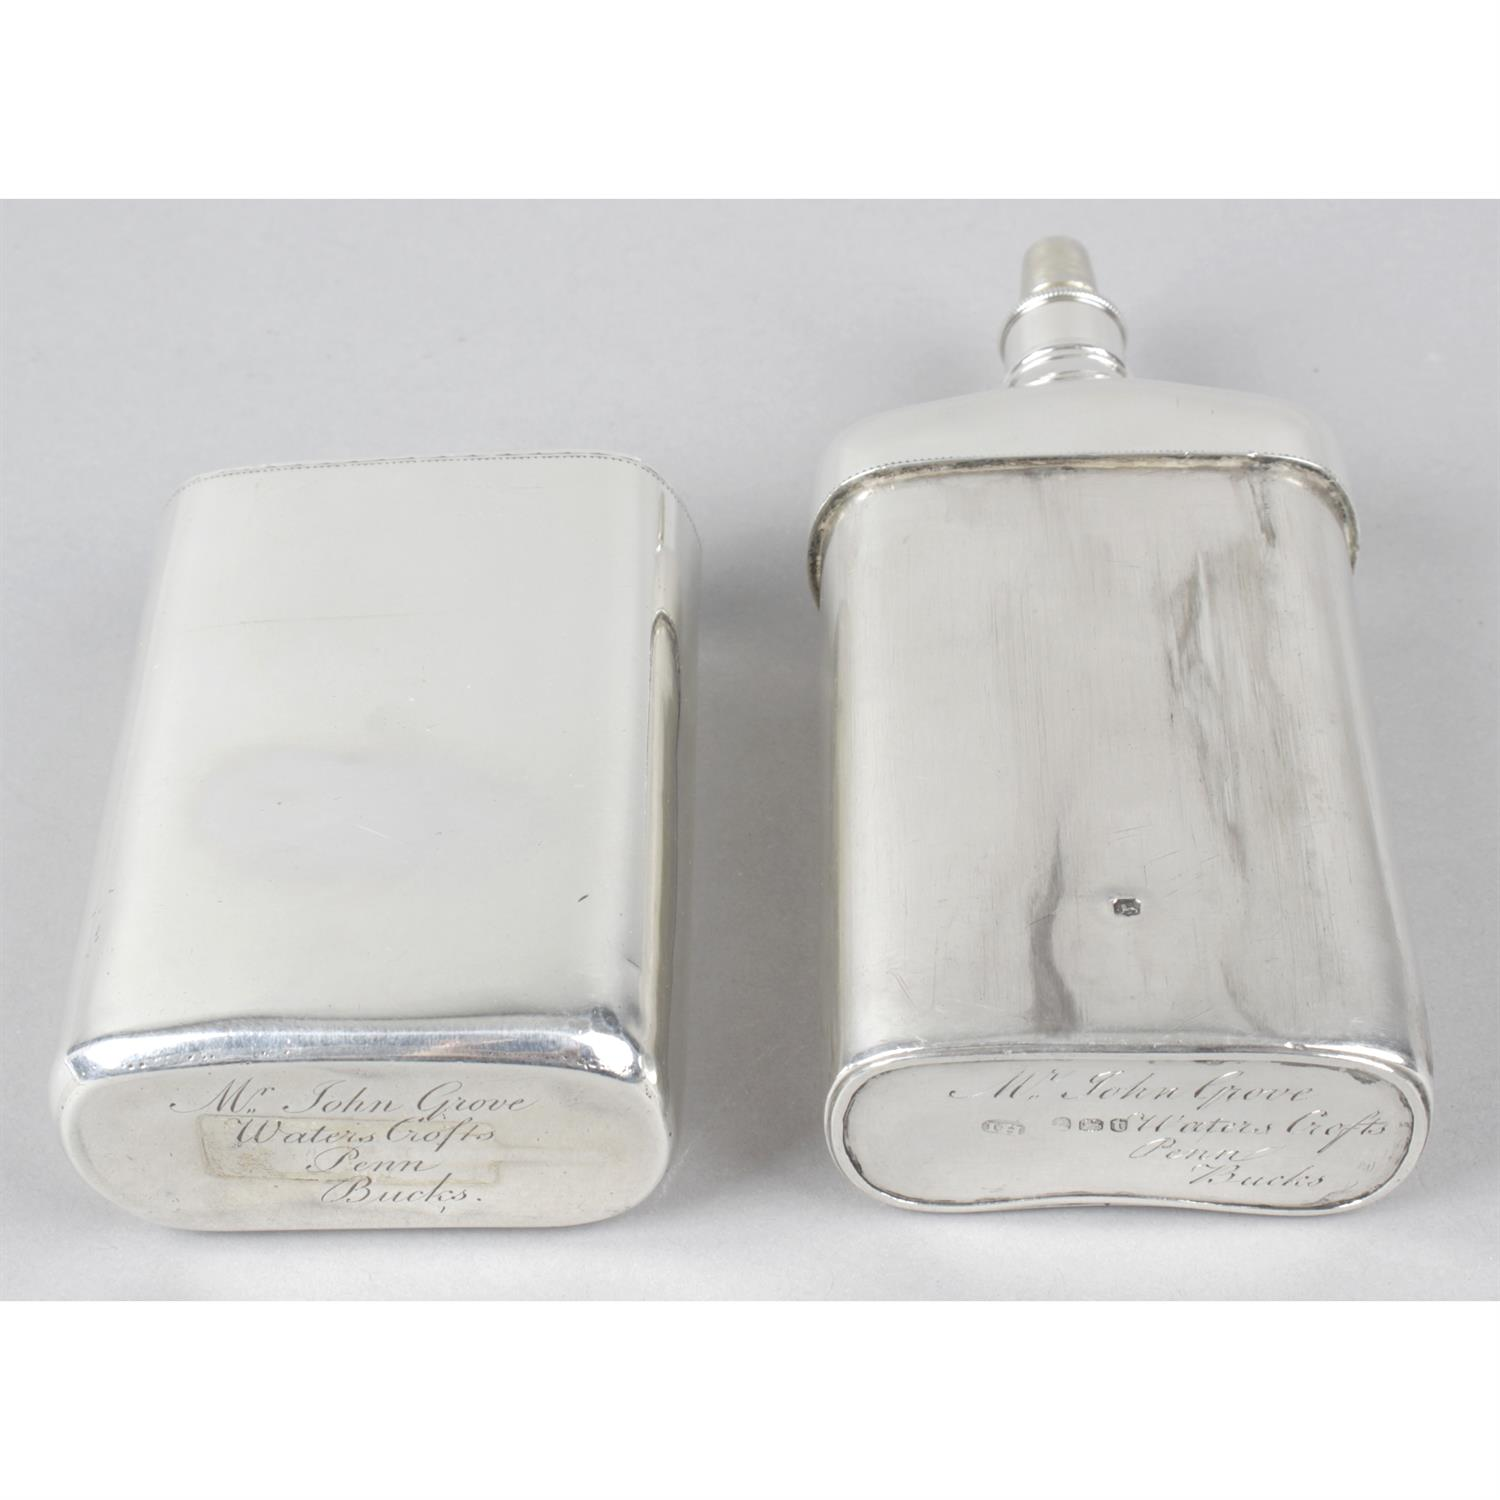 A George III silver hip flask. - Image 3 of 5